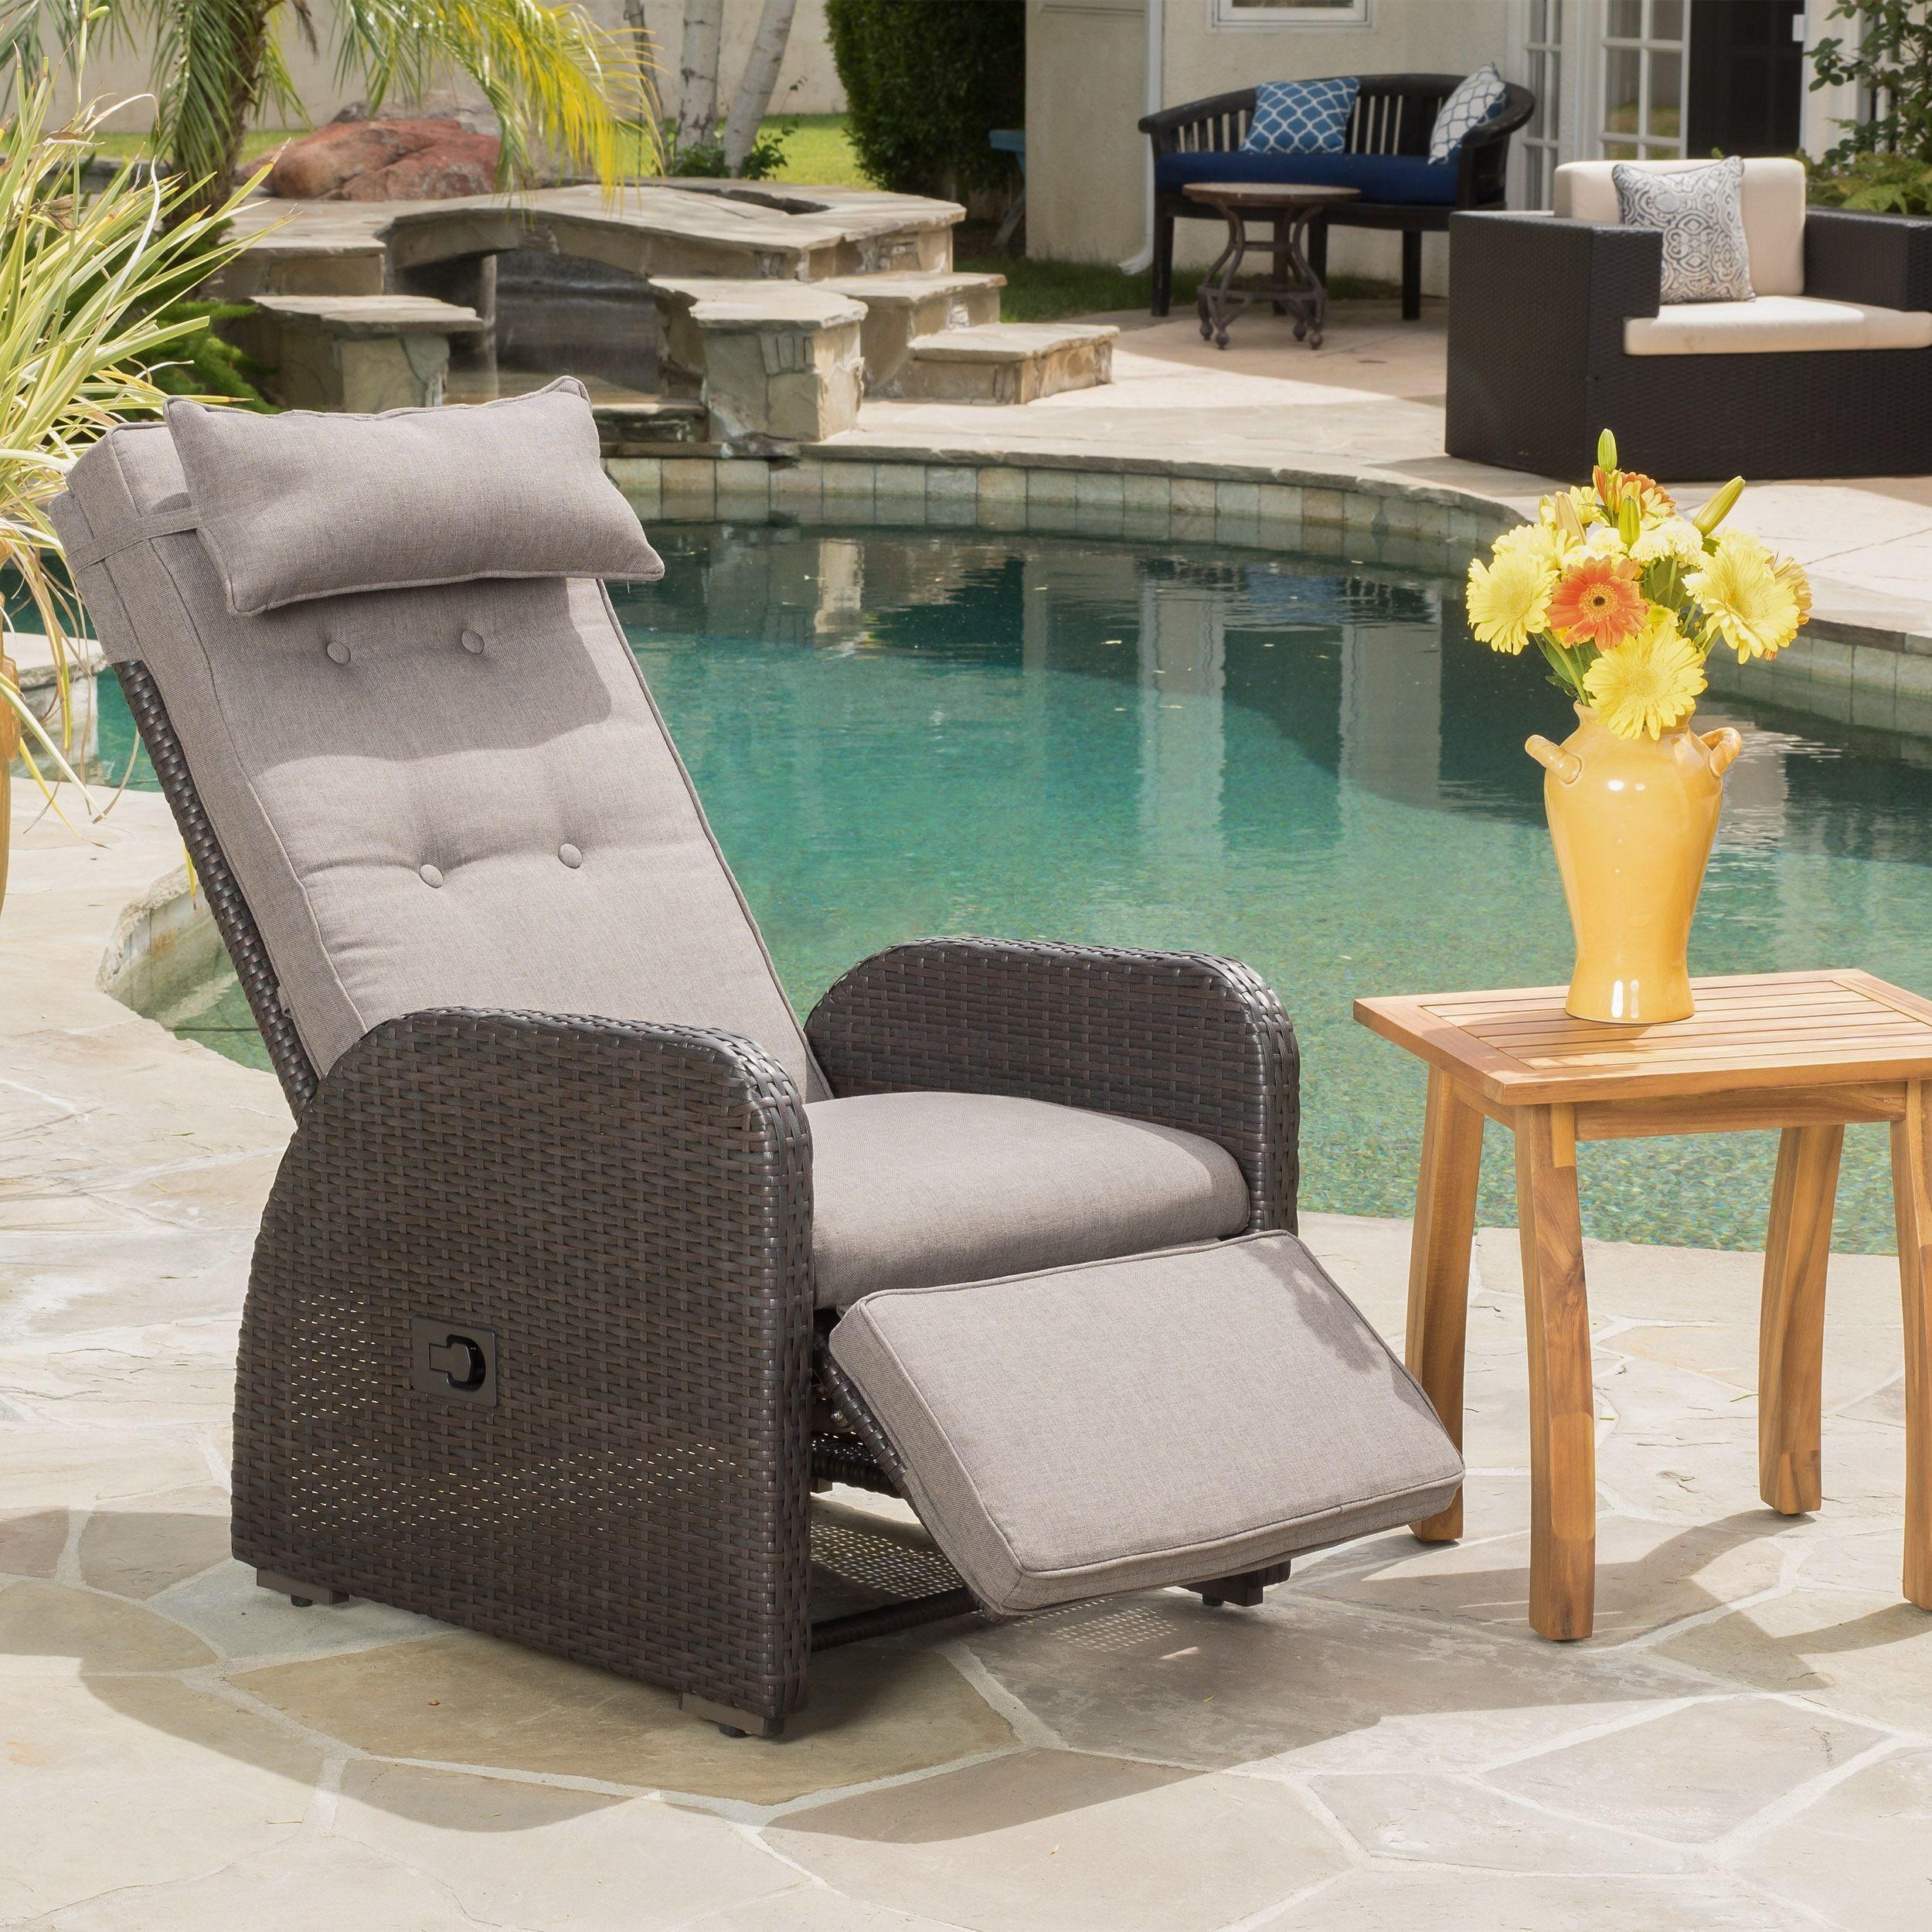 Christopher Knight Patio Furniture.Ostia Wicker Recliner With Cushion By Christopher Knight Home Brown